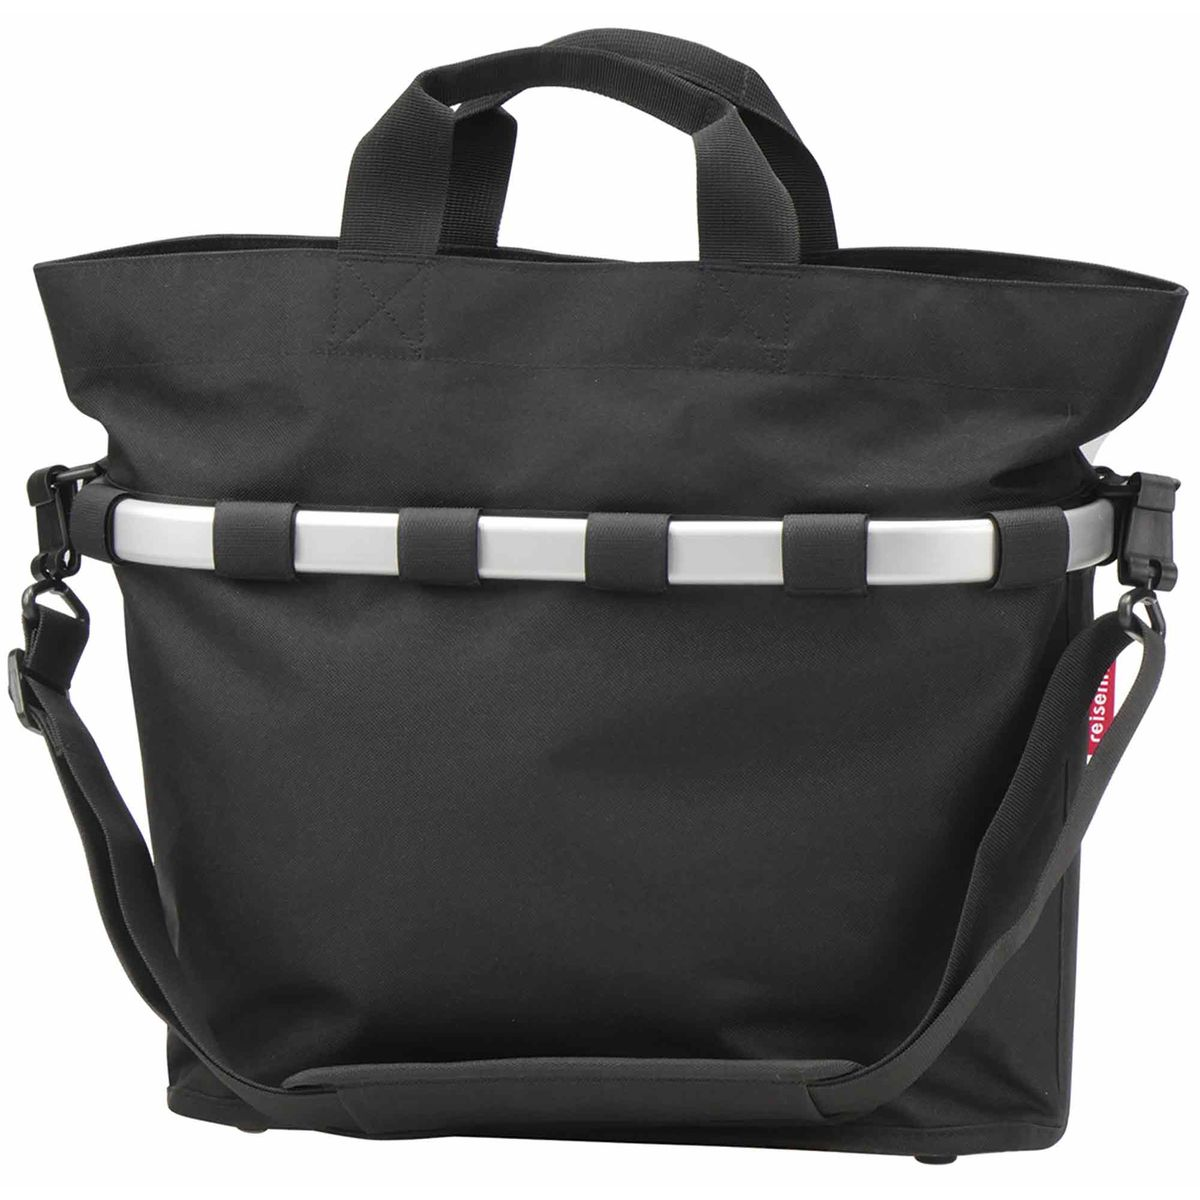 BIKEBASKET OVAL M single pannier bag